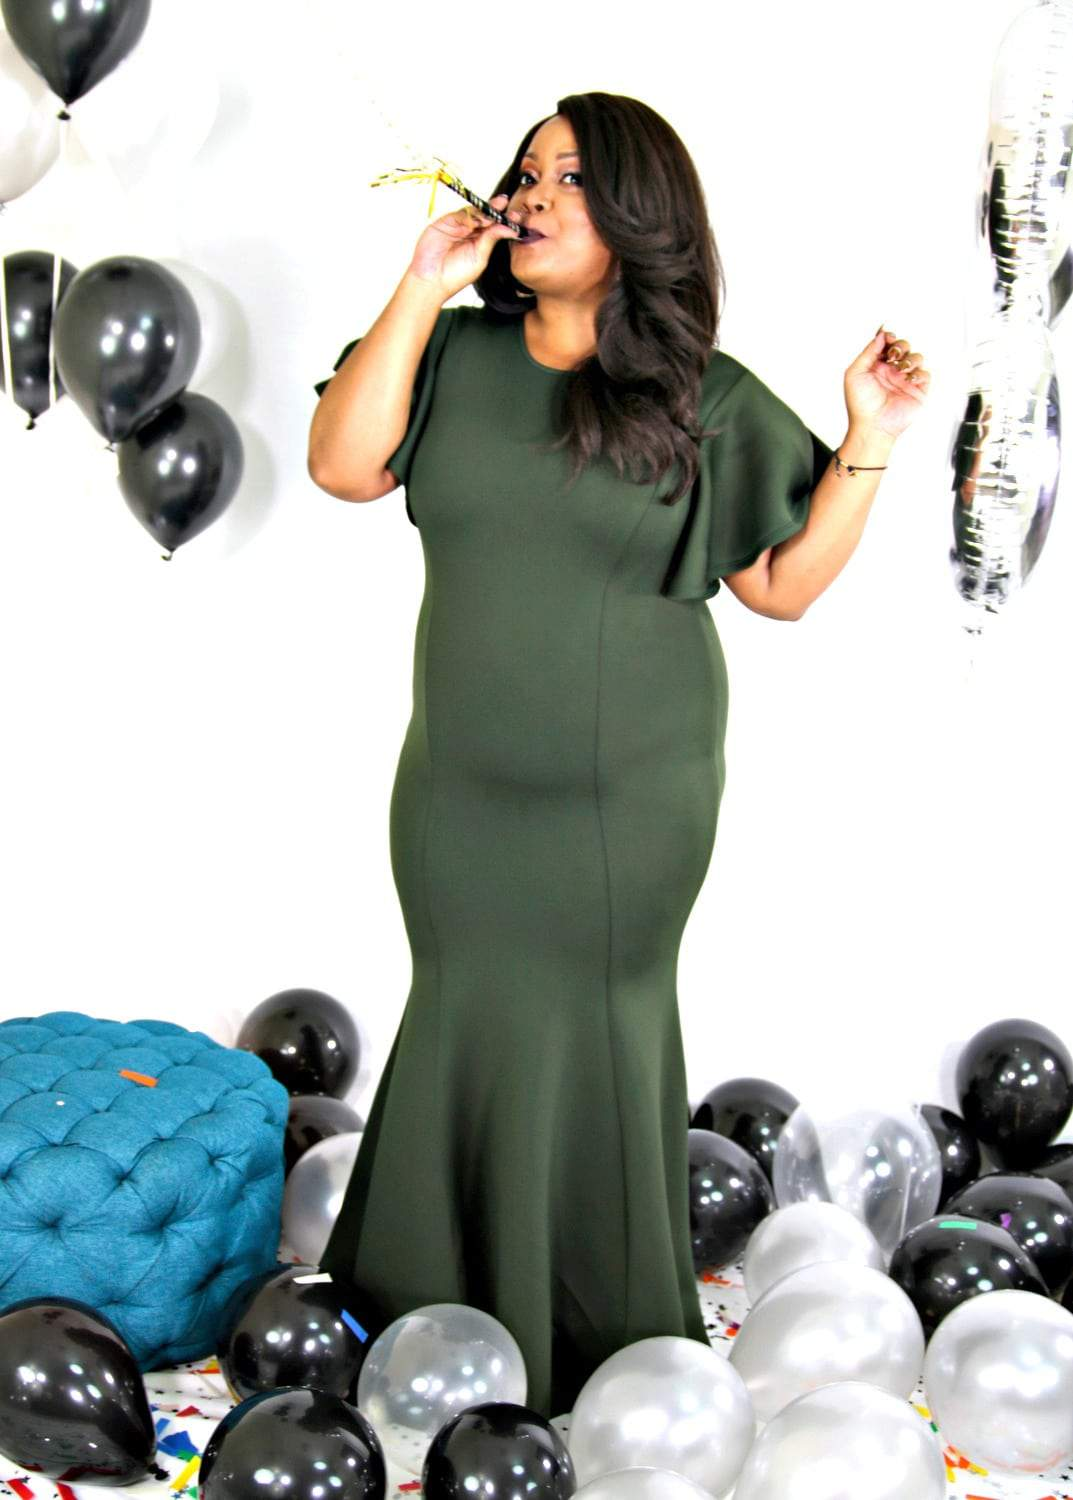 The Curvy Fashionista turns 8 with Chic and Curvy (5) edit